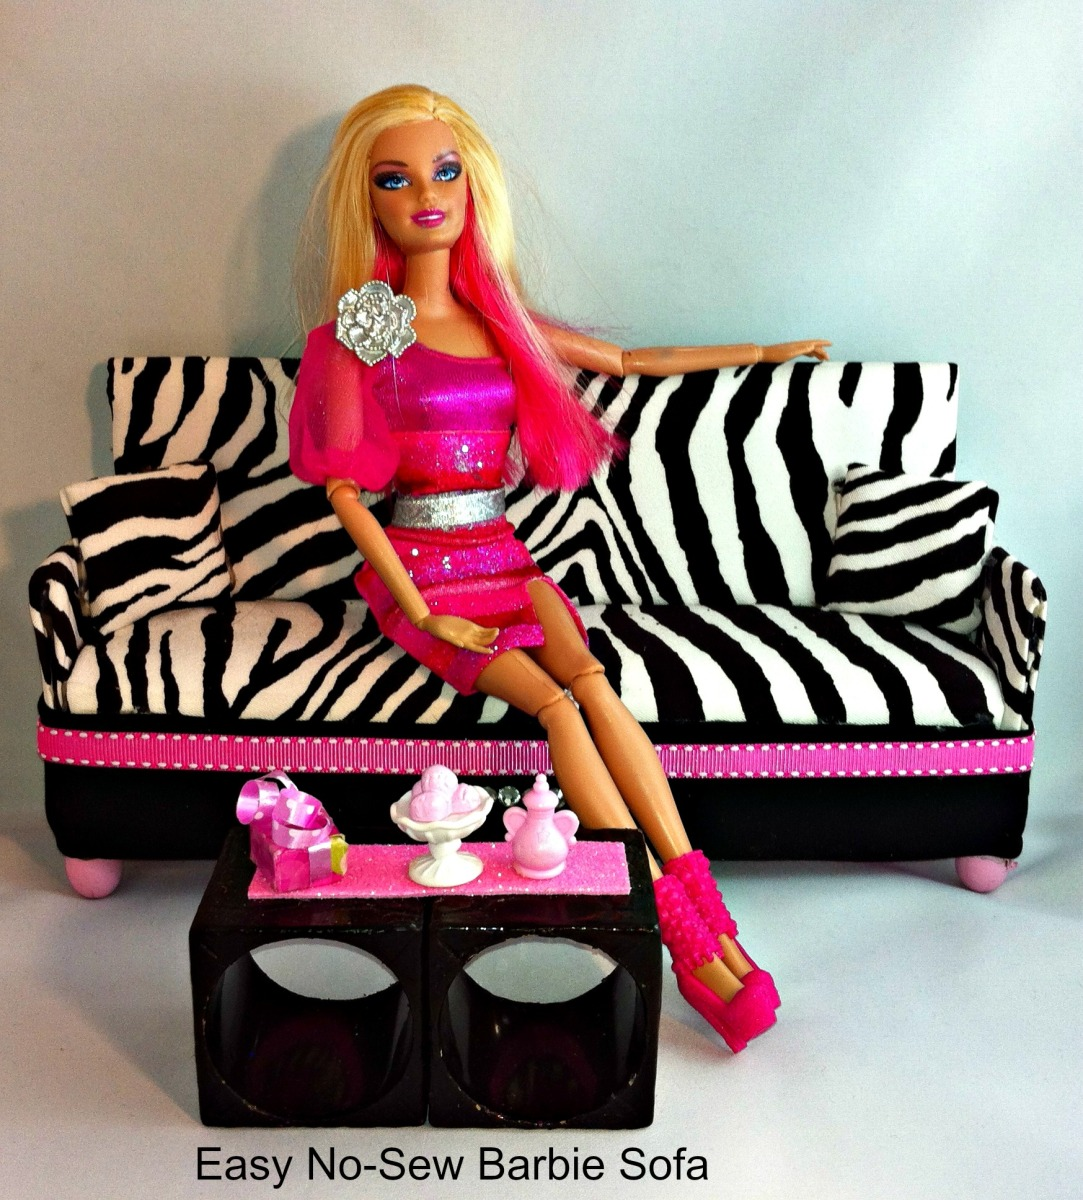 Easy, No-Sew DIY Barbie Doll Couch